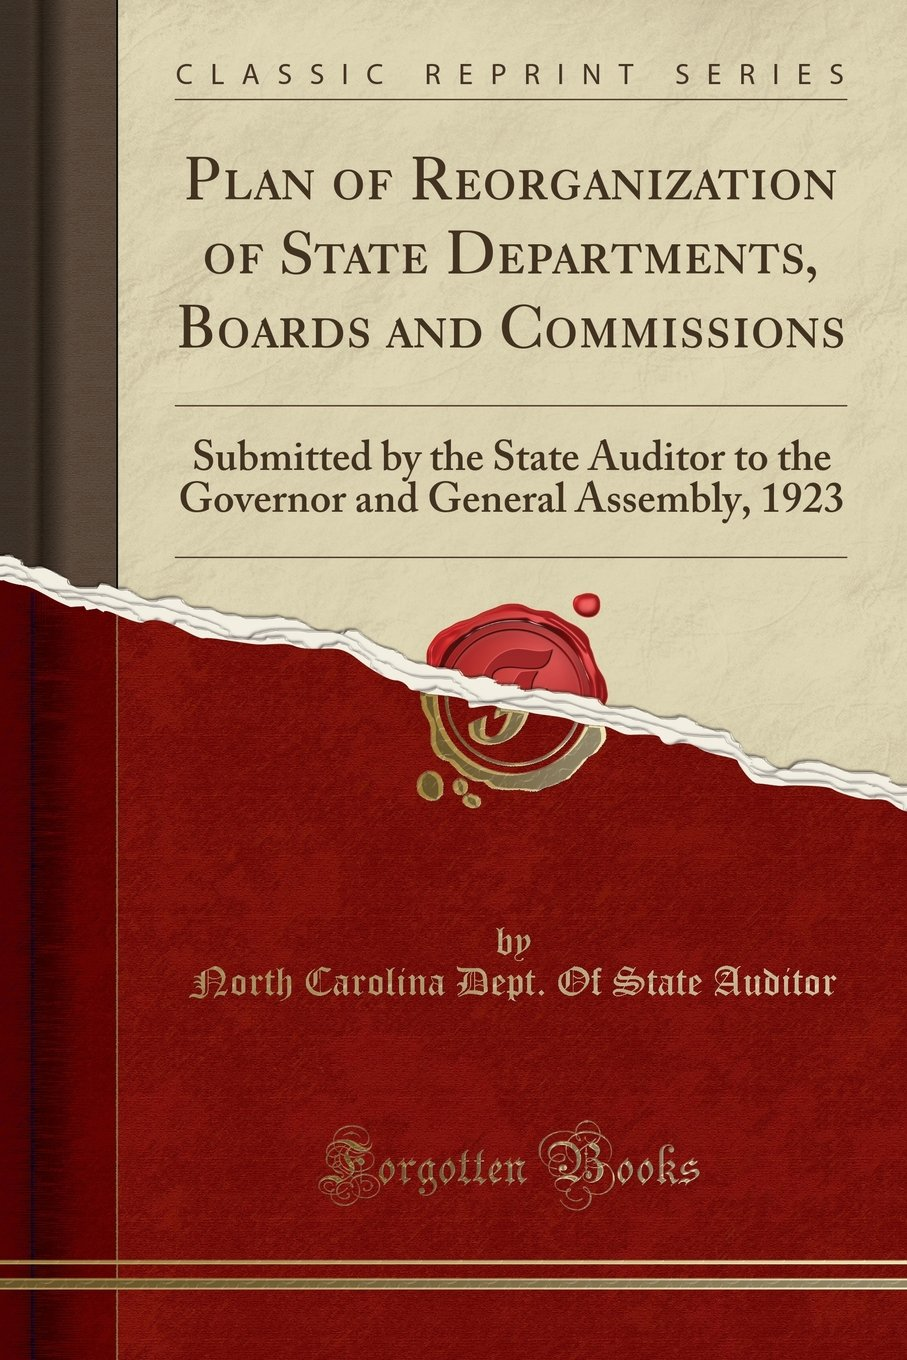 Plan of Reorganization of State Departments, Boards and Commissions: Submitted by the State Auditor to the Governor and General Assembly, 1923 (Classic Reprint) pdf